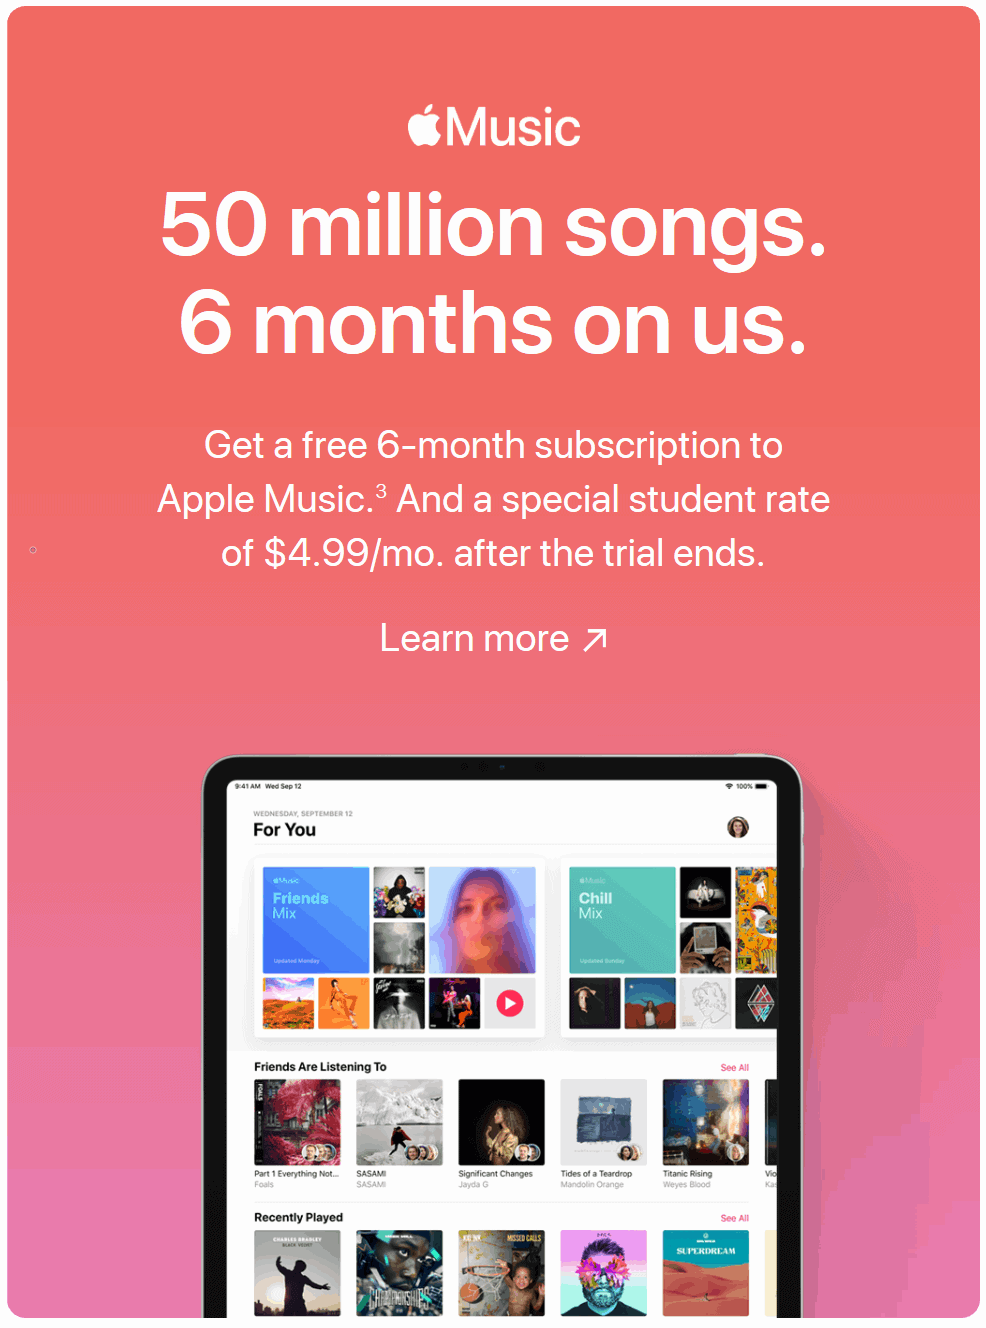 3 Ways to Get Apple Music 6 Months Free Trial( Latest Update)